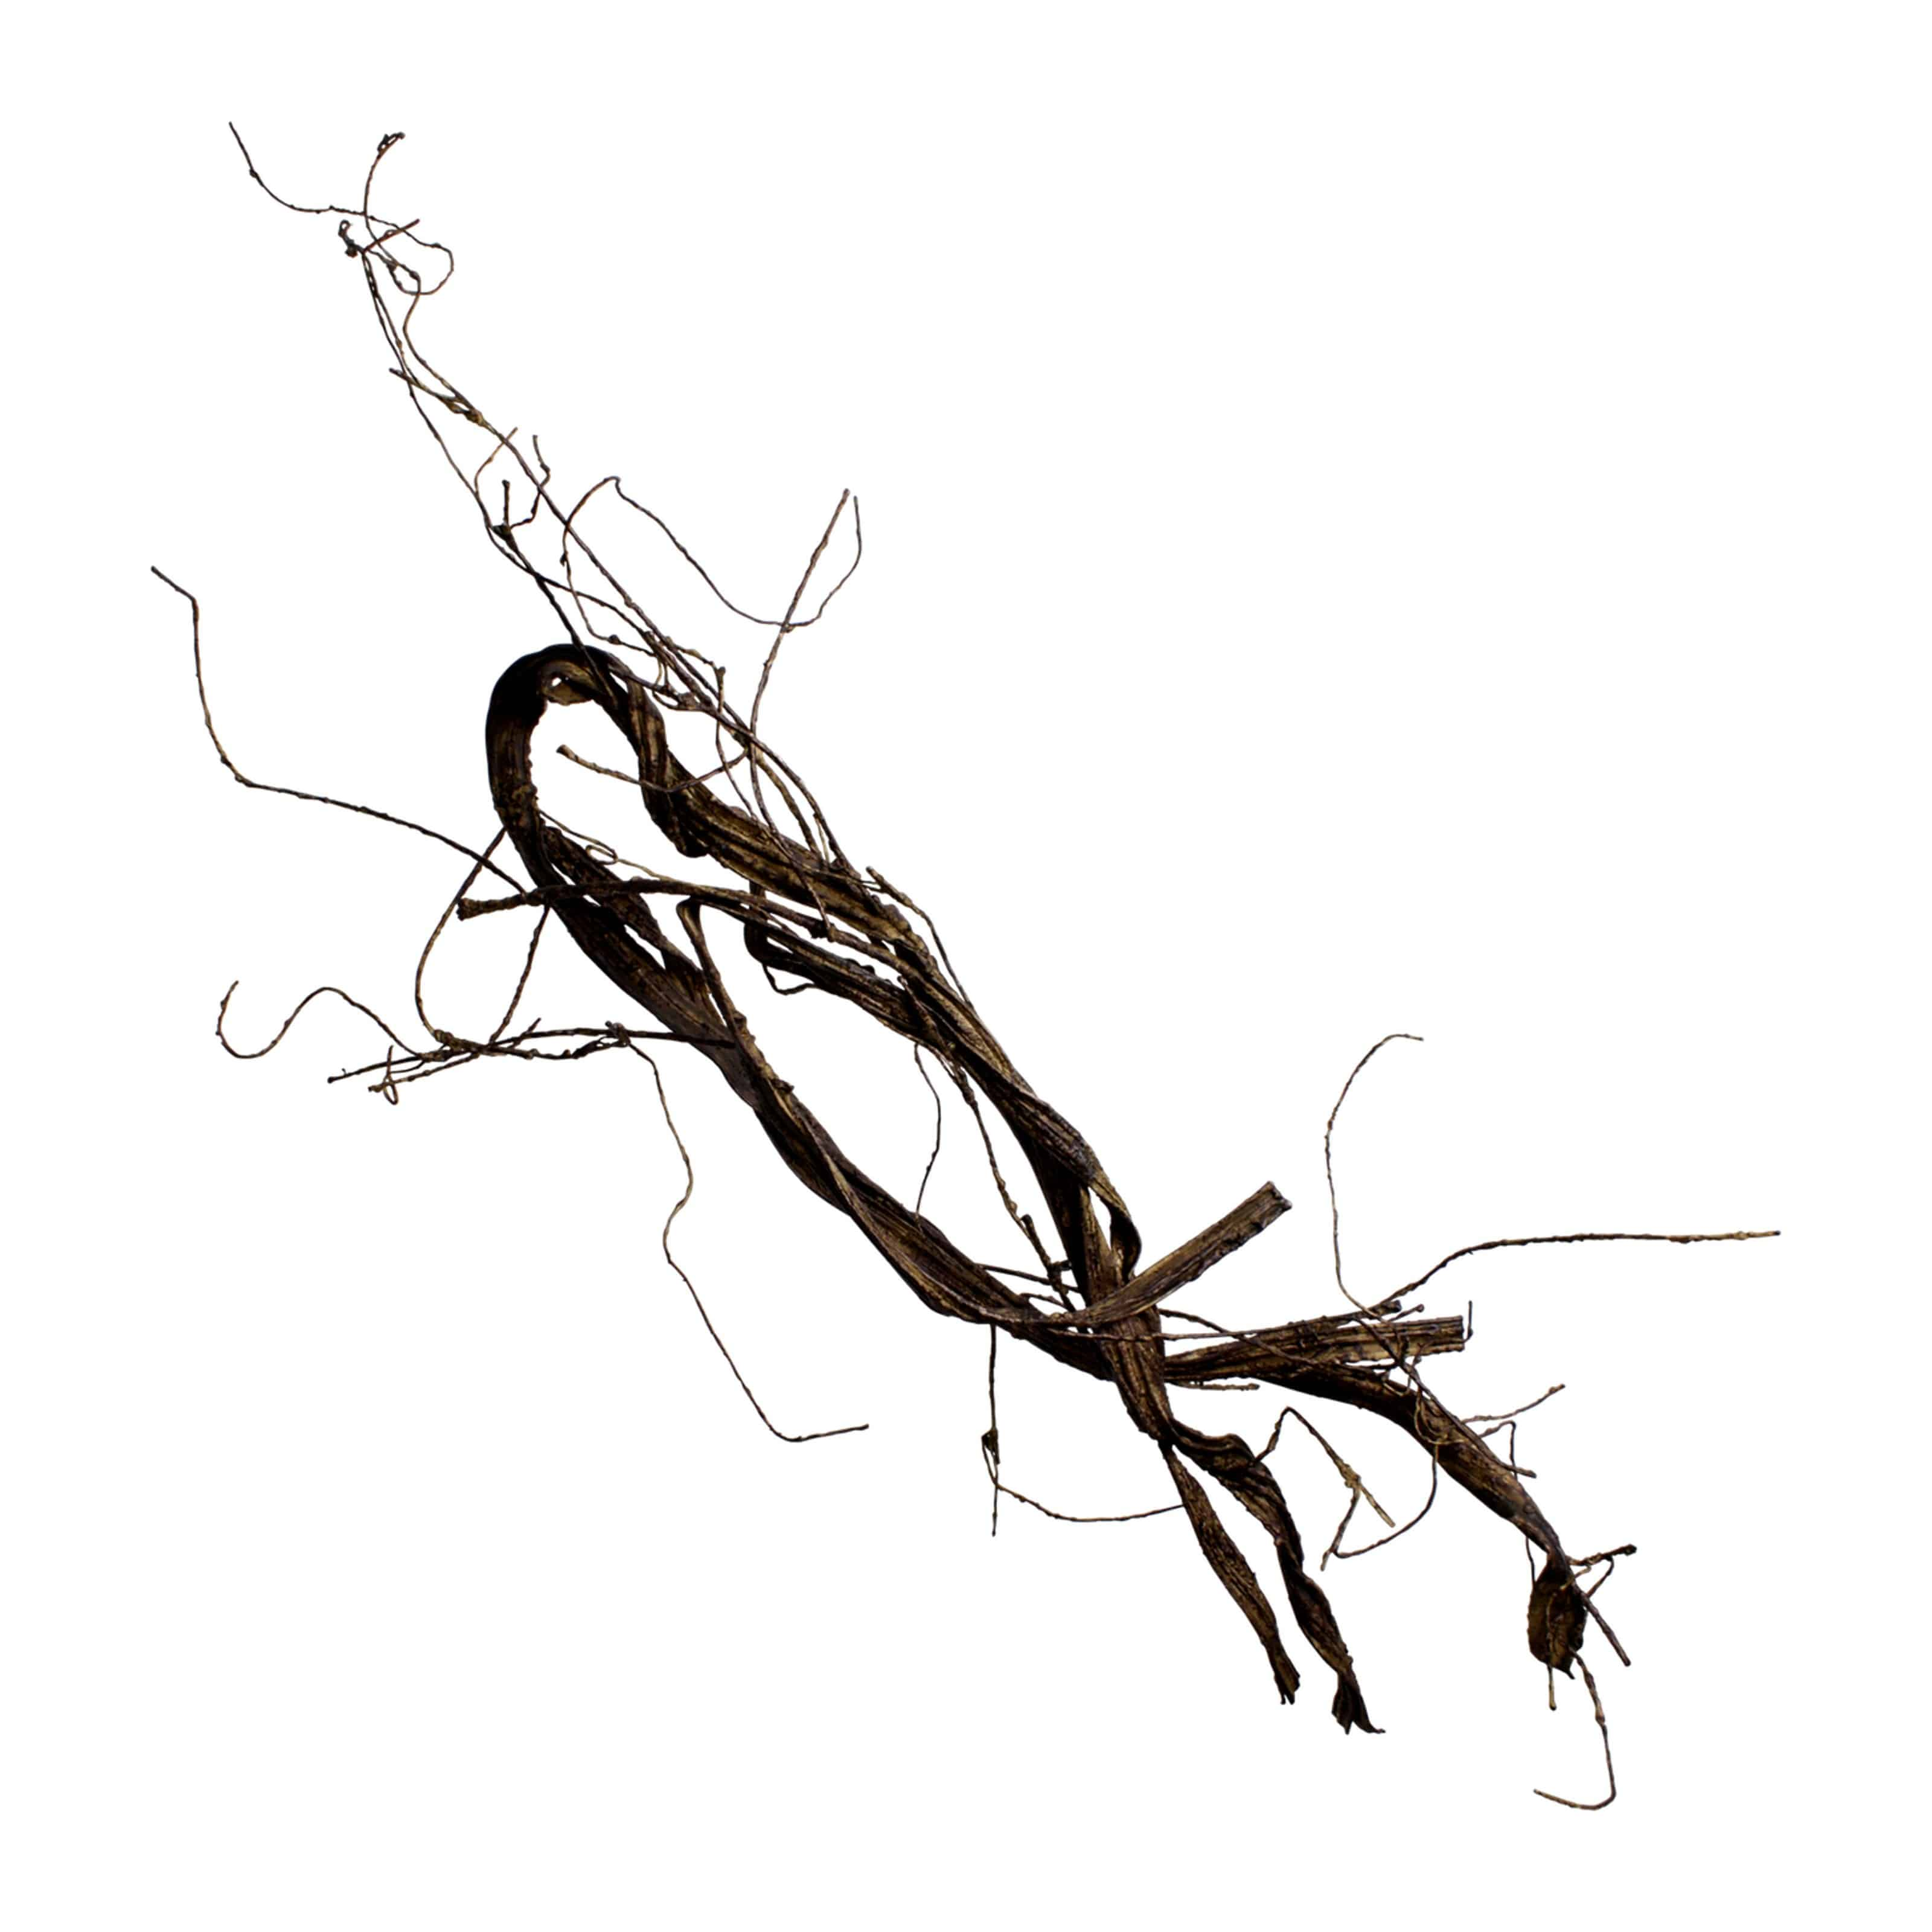 Buy our artificial flax twig to add rustic earthy beauty to your arrangement designs. Easy shape into any style